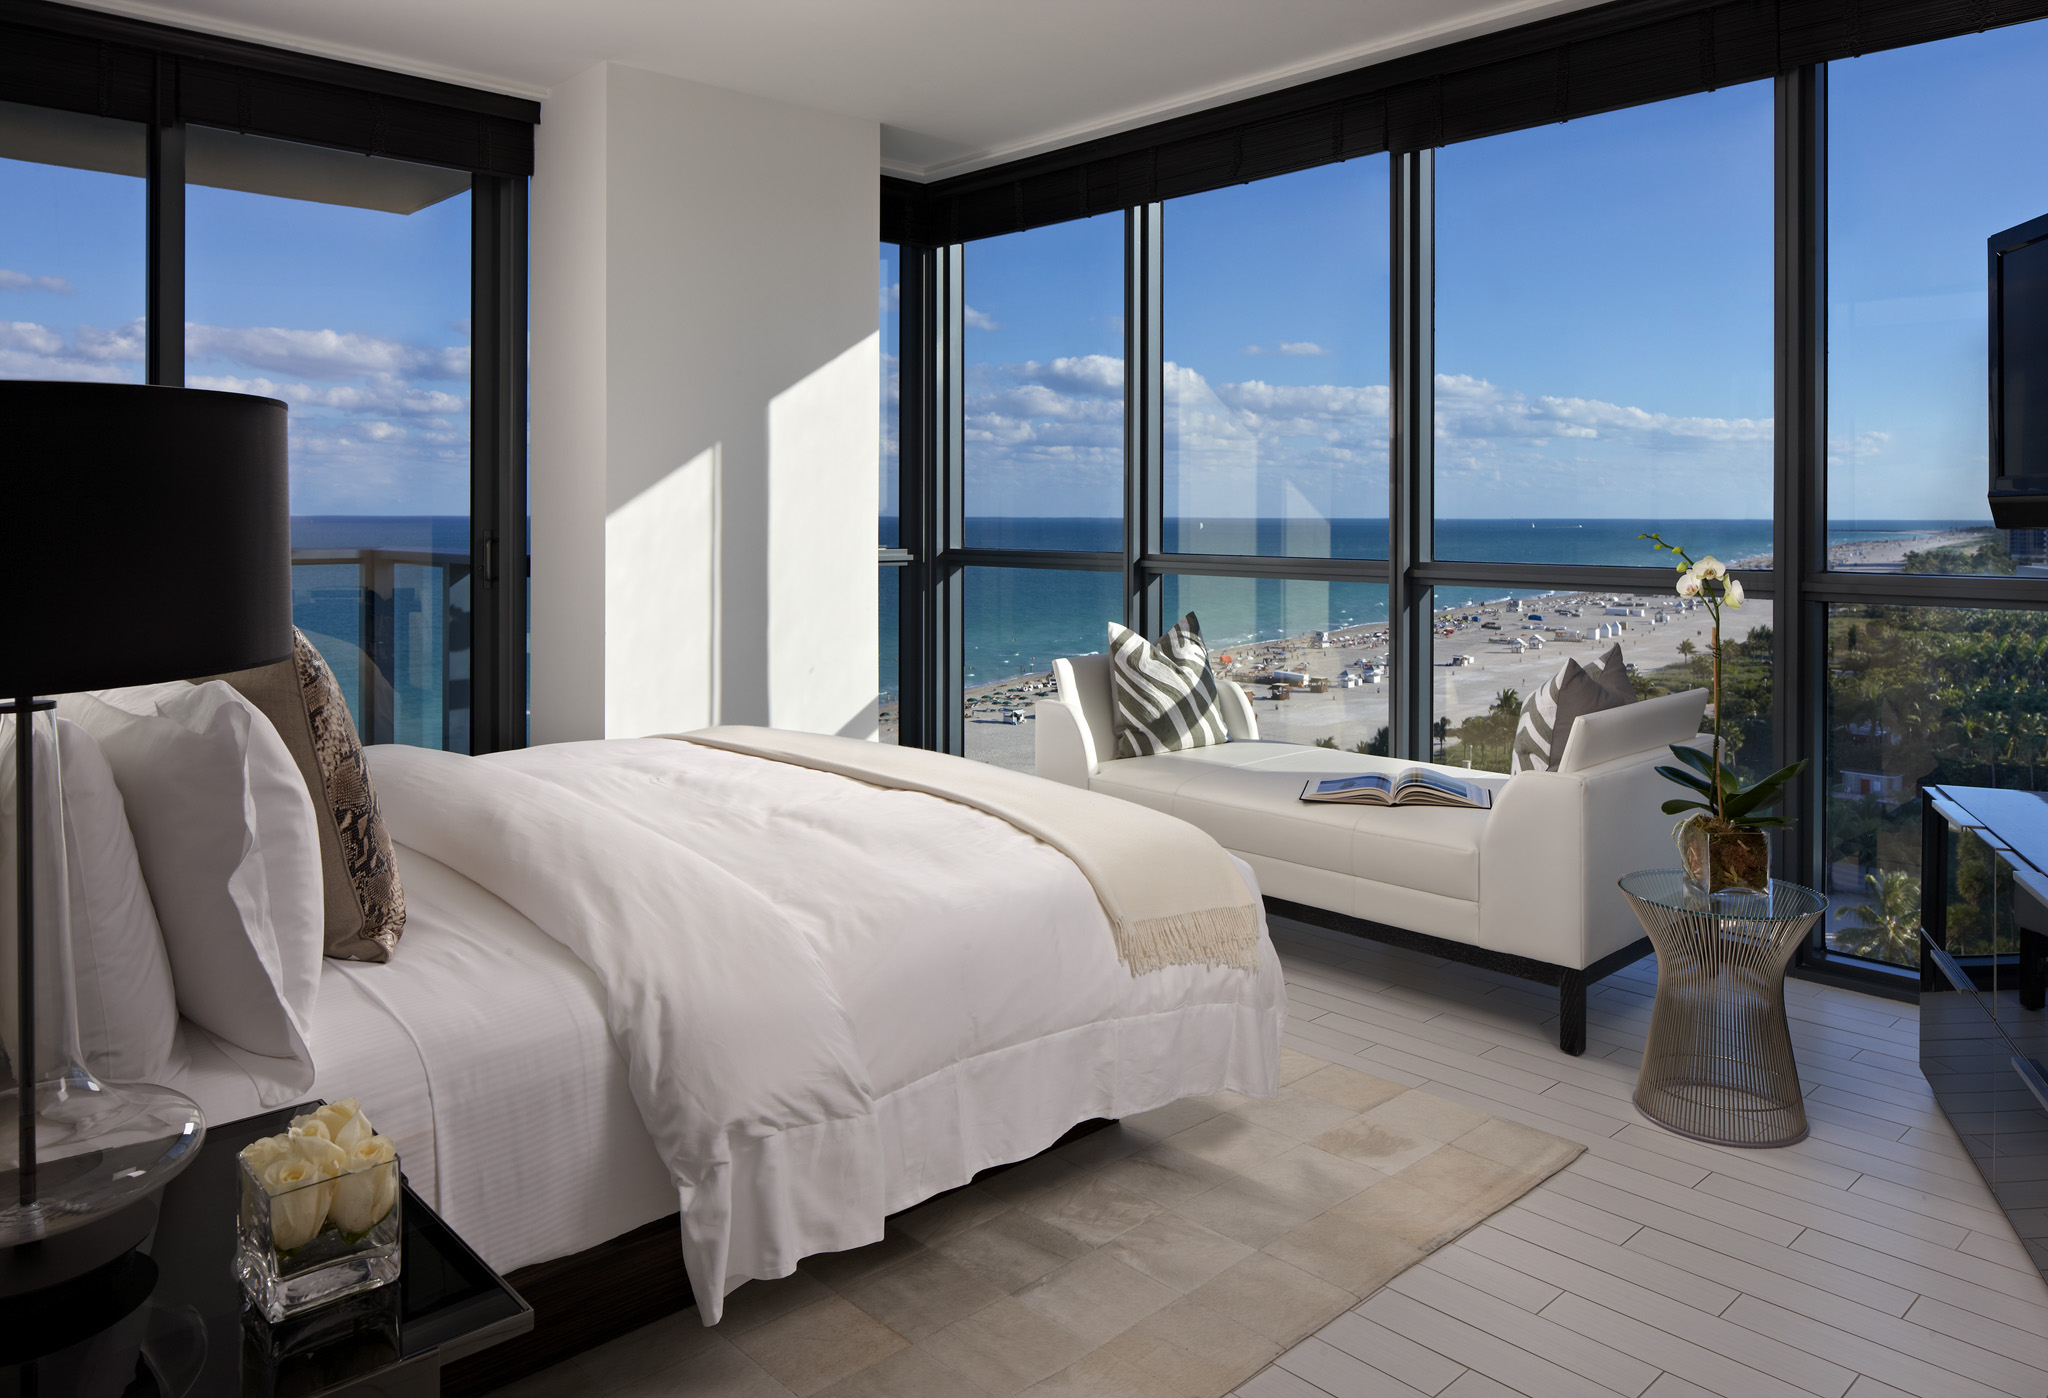 Hotel South Beach Rooms